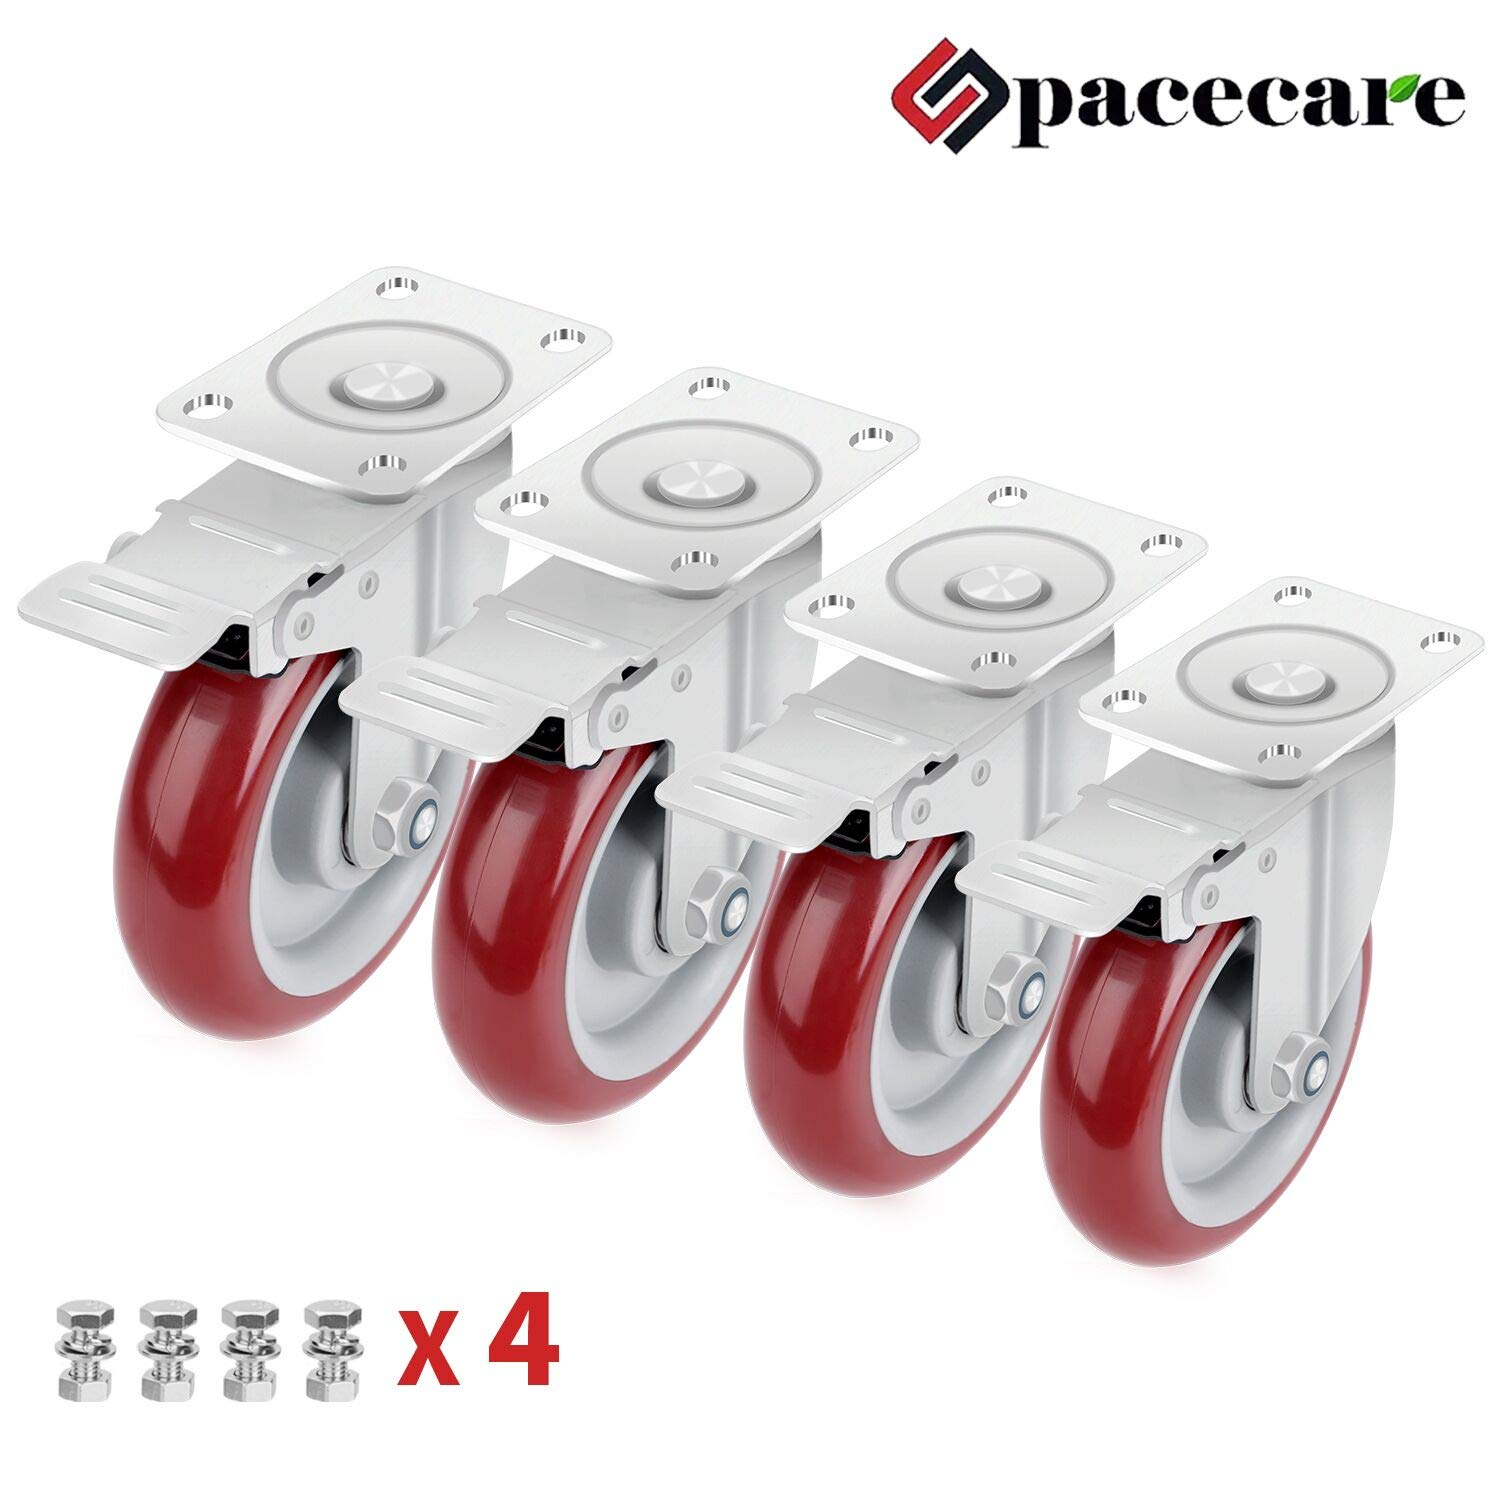 SPACECARE 5 Inch Swivel Casters Wheels 1500lbs Heavy Duty Casters with Brake Polyurethane Dual Locking Casters Set of 4 Red by SPACECARE